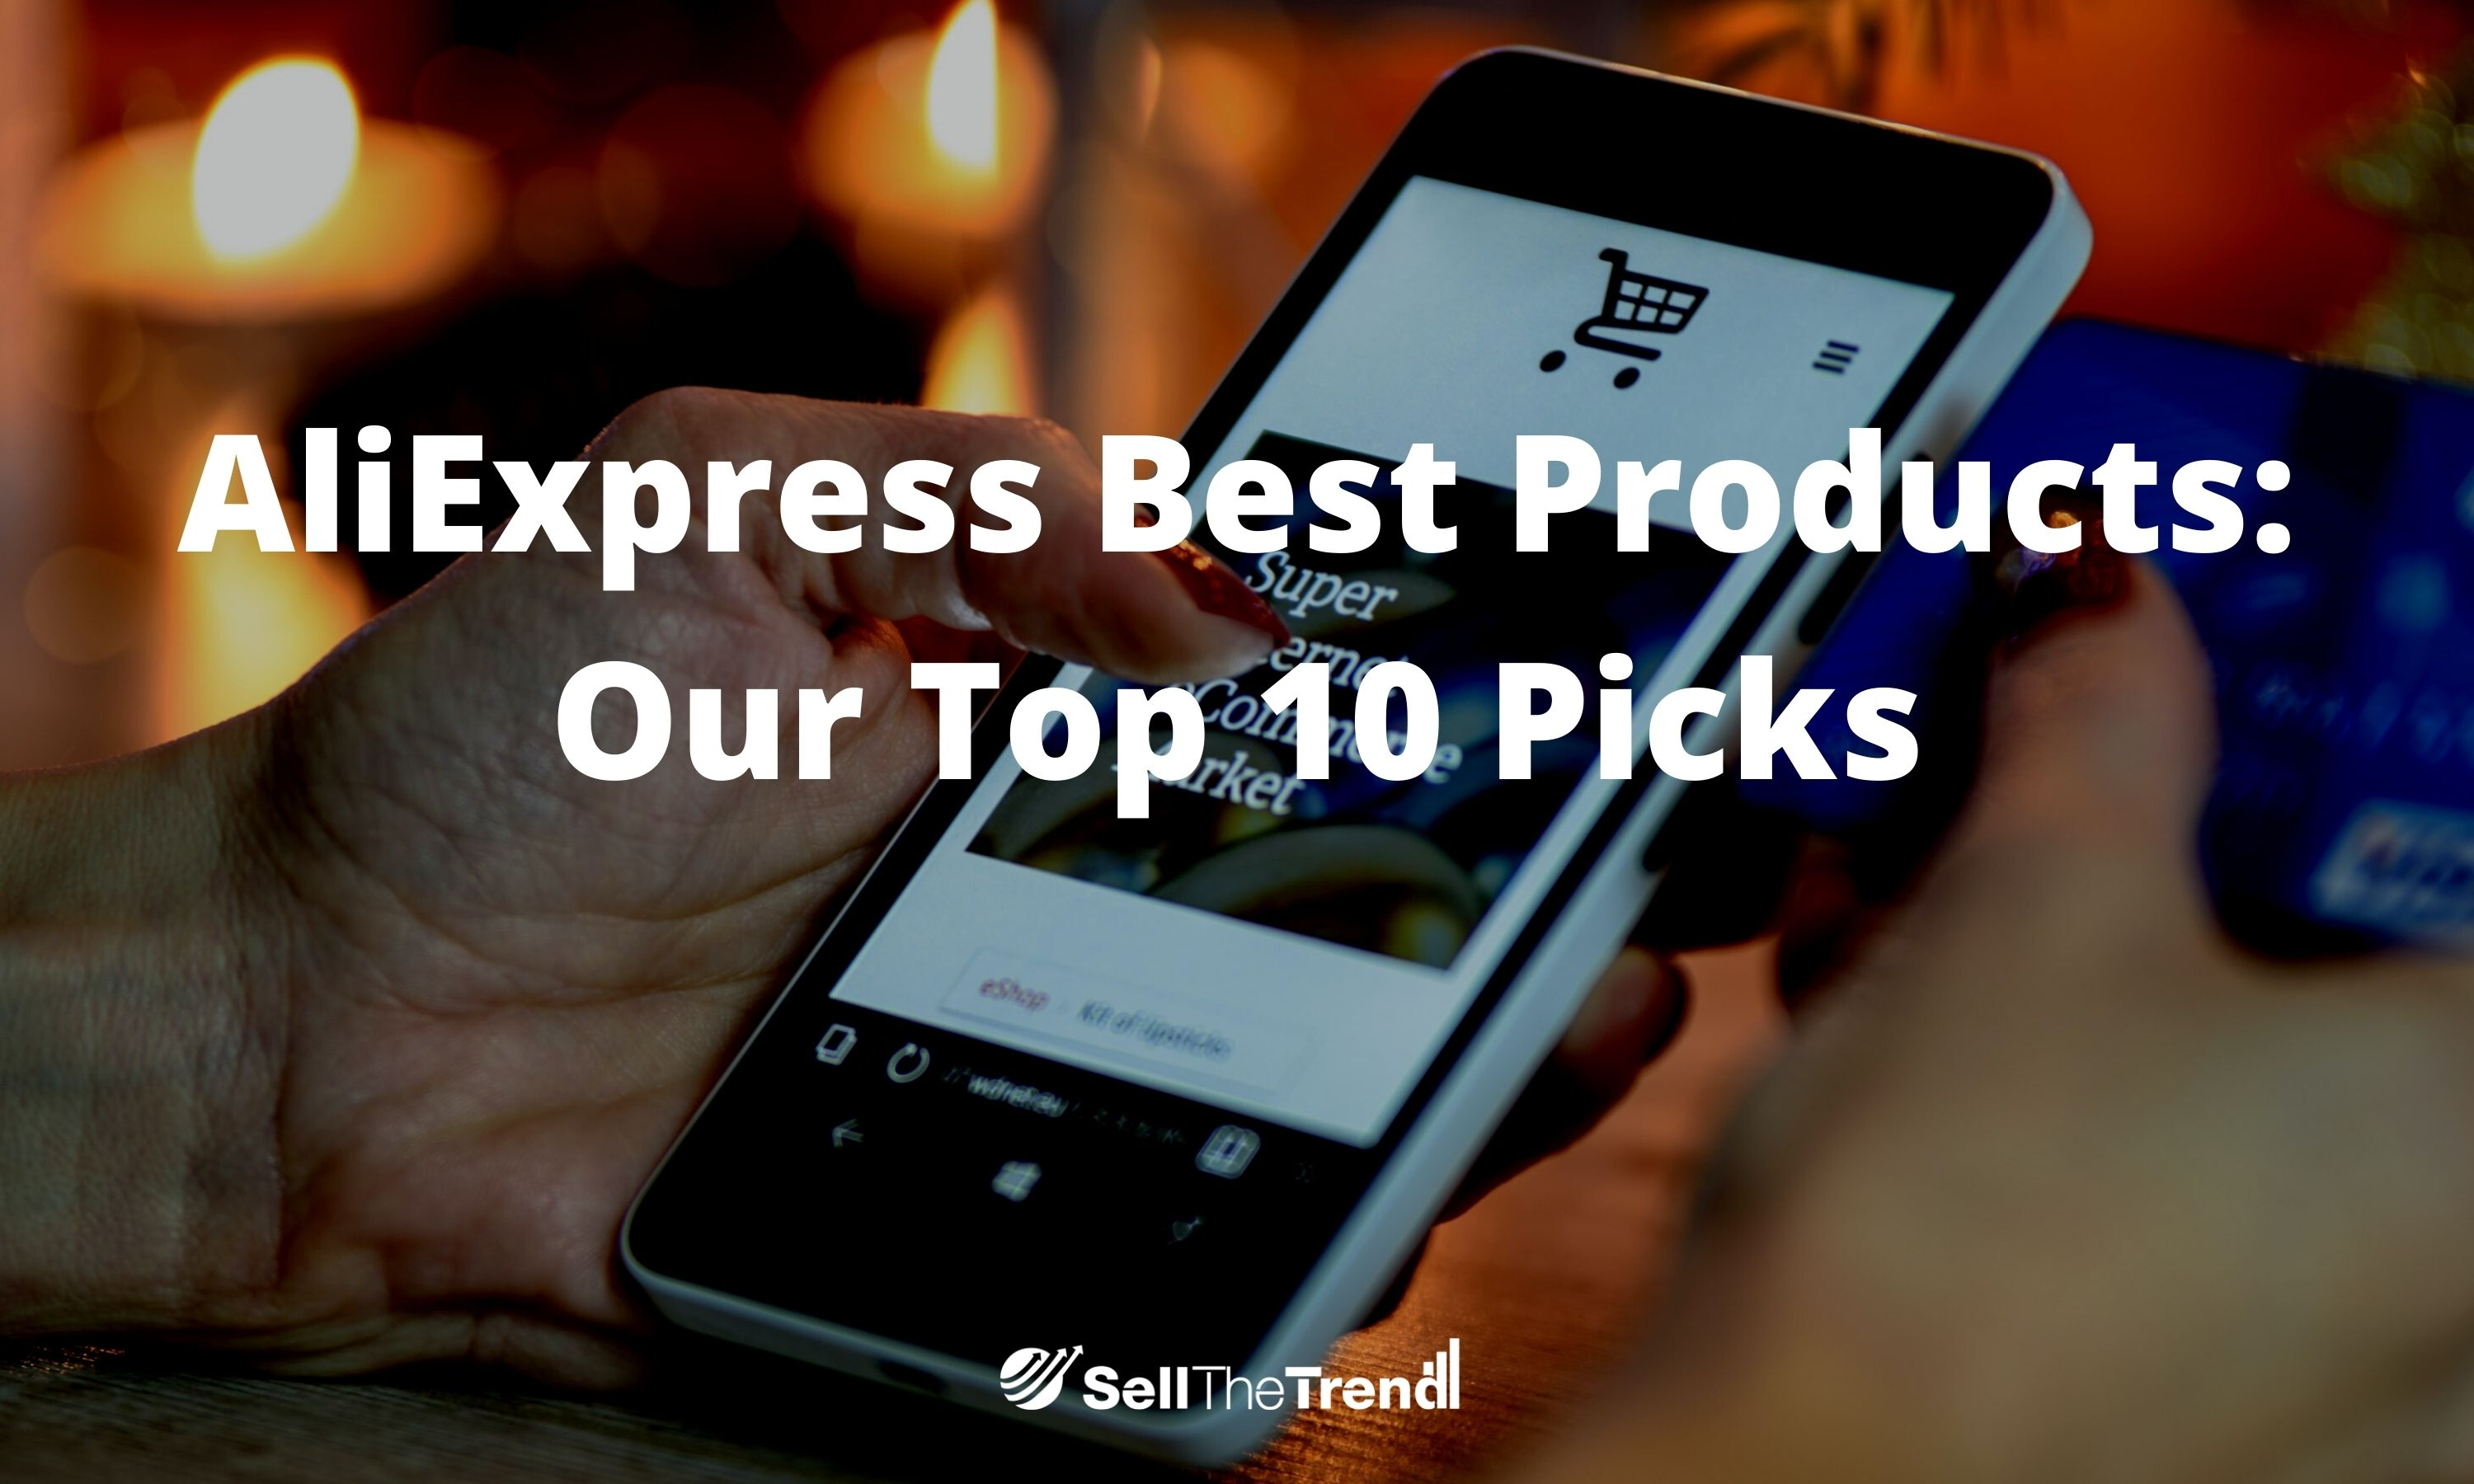 AliExpress Best Products: Our Top 10 Picks